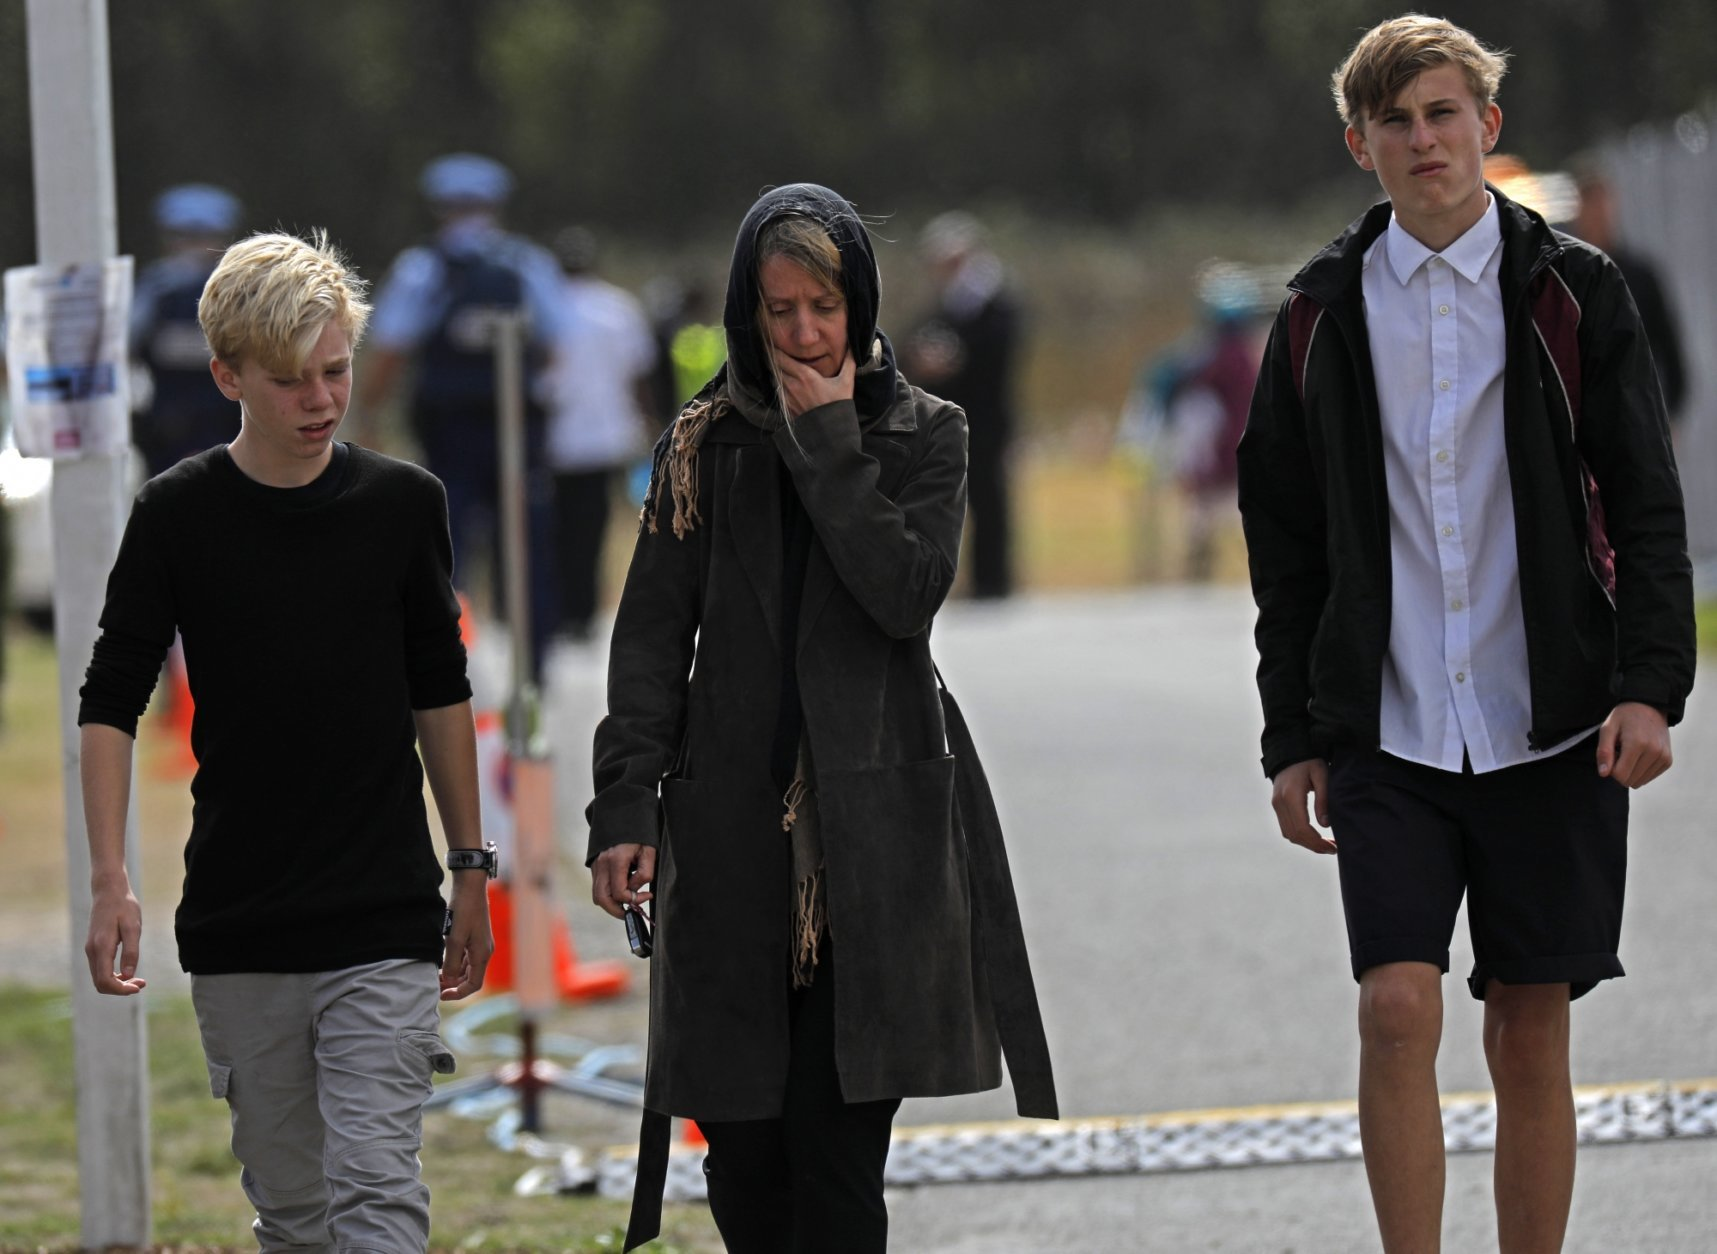 Mourners leave the cemetery after the burial service for a victim of the Friday March 15 mosque shootings at the Memorial Park Cemetery in Christchurch, New Zealand, Thursday, March 21, 2019. (AP Photo/Vincent Yu)